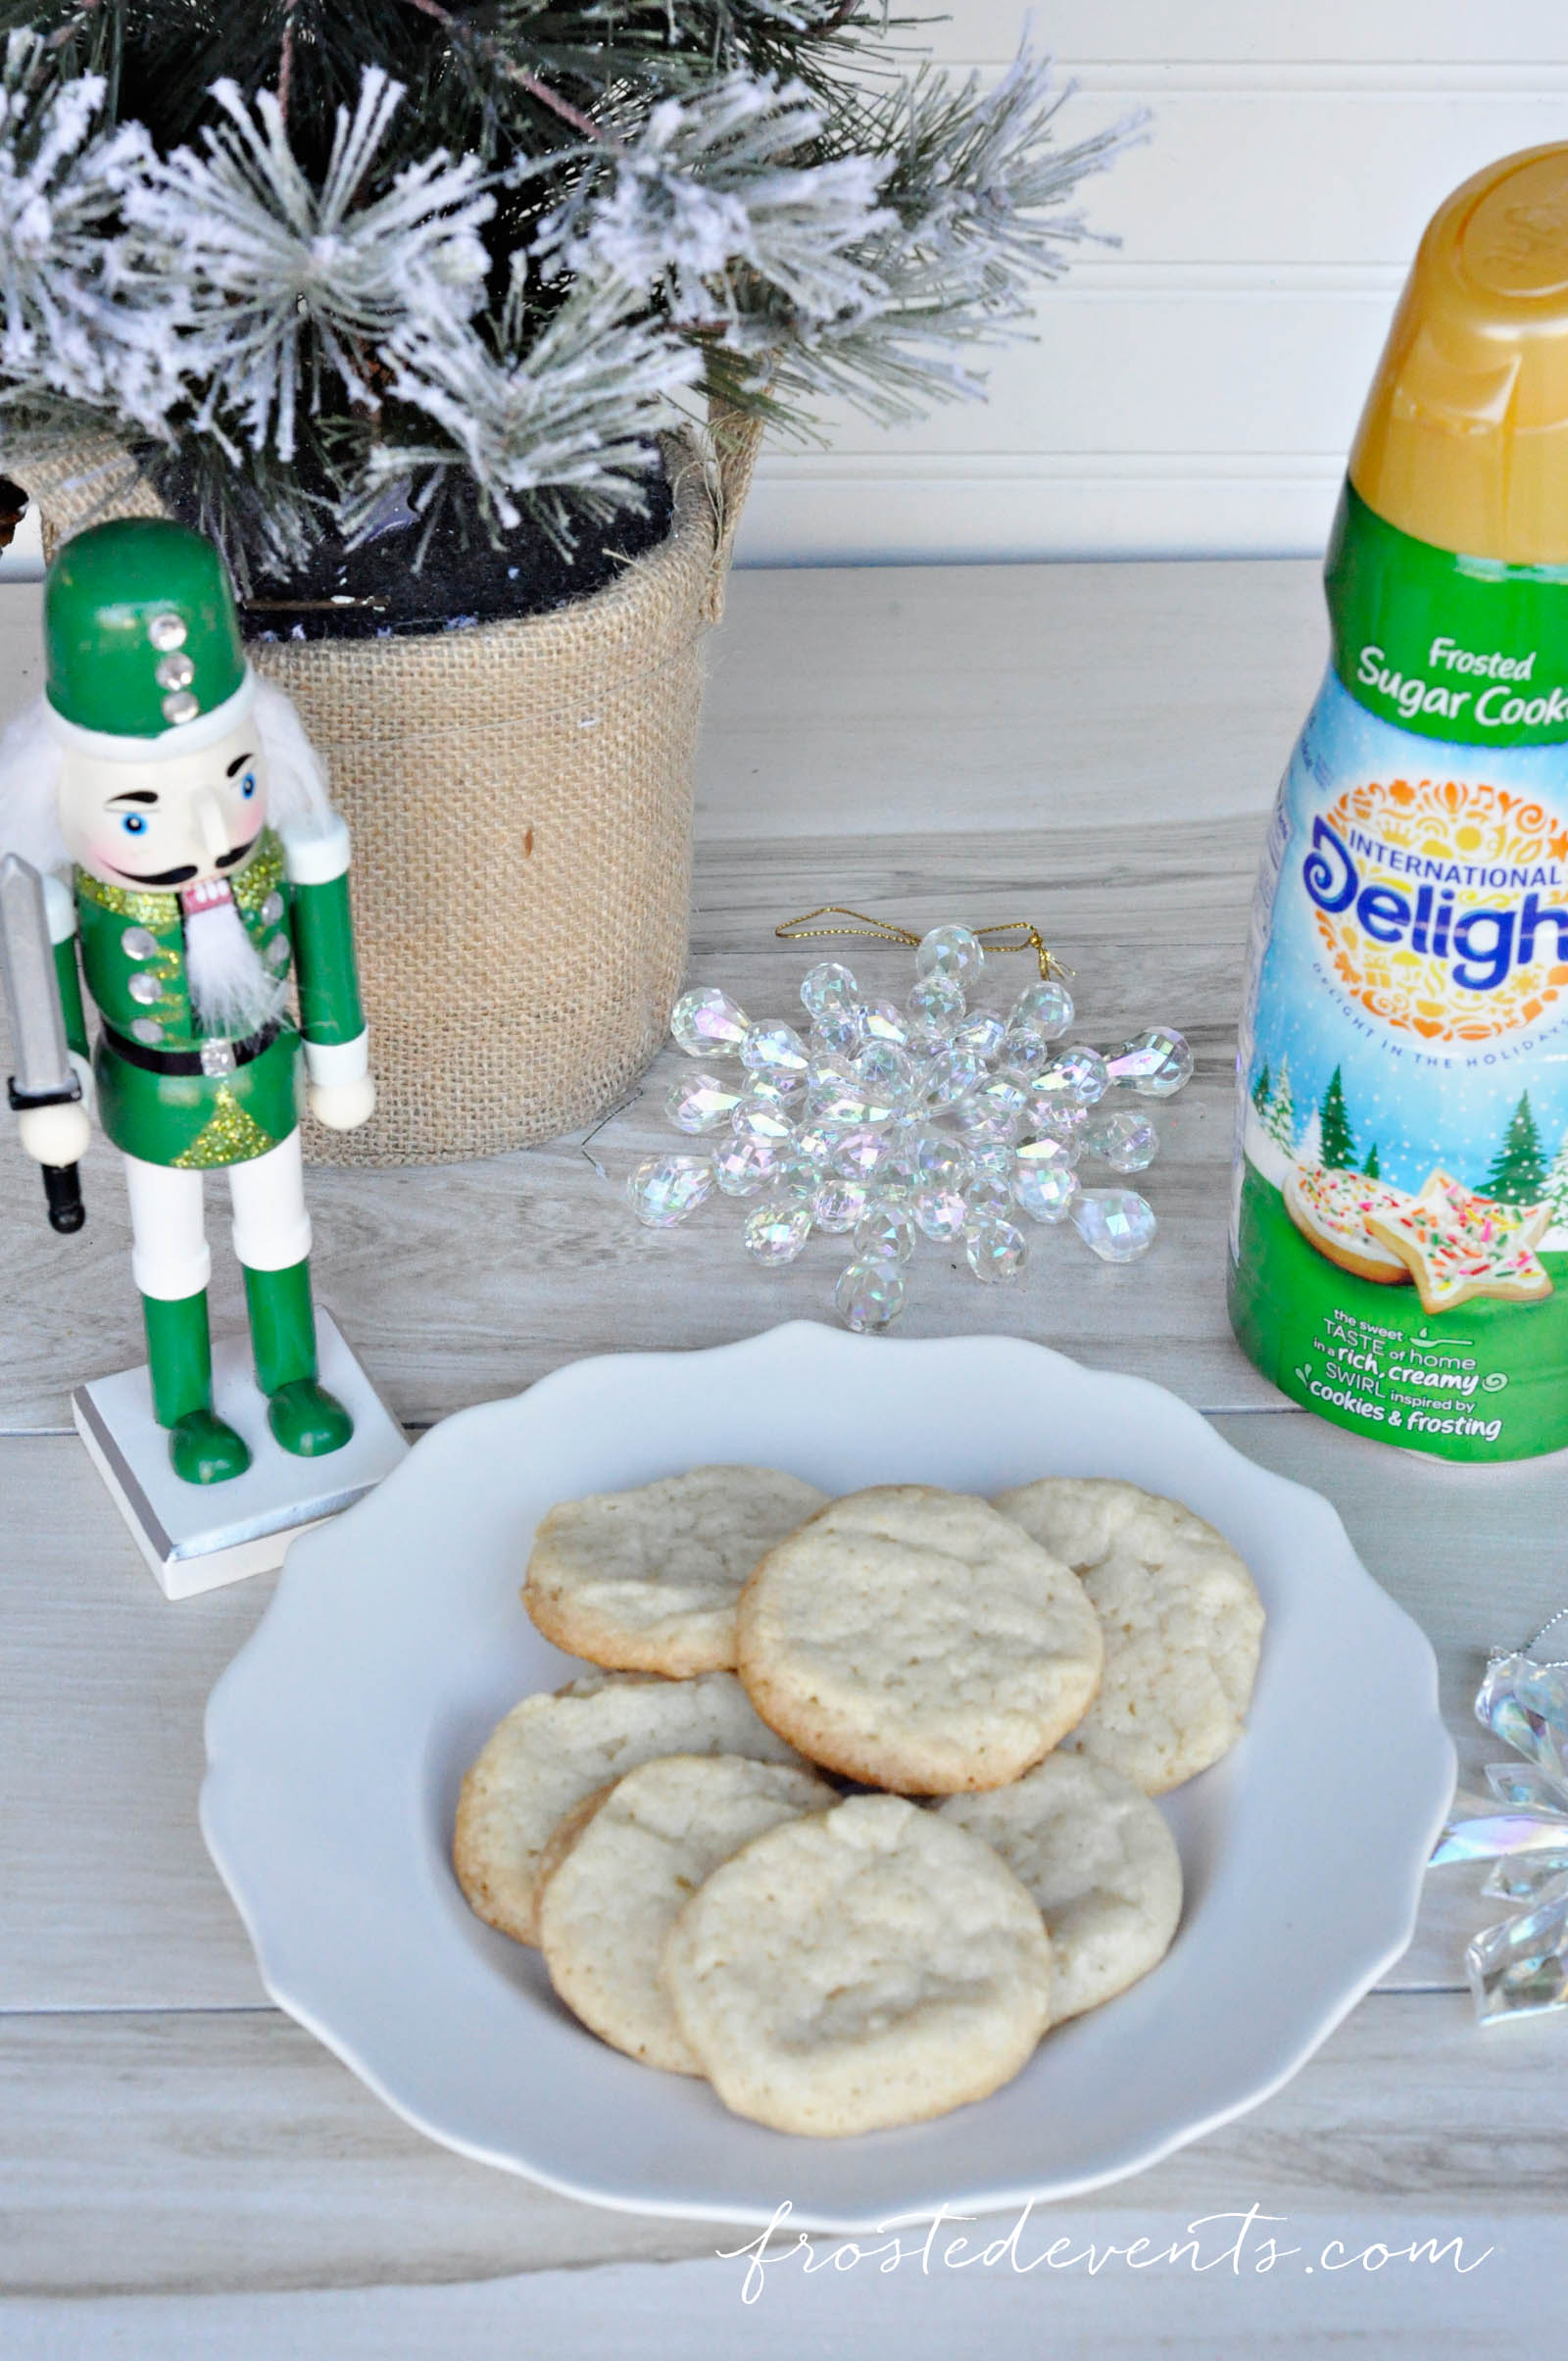 Hello Holiday Season, But First Coffee with International Delight Creamer